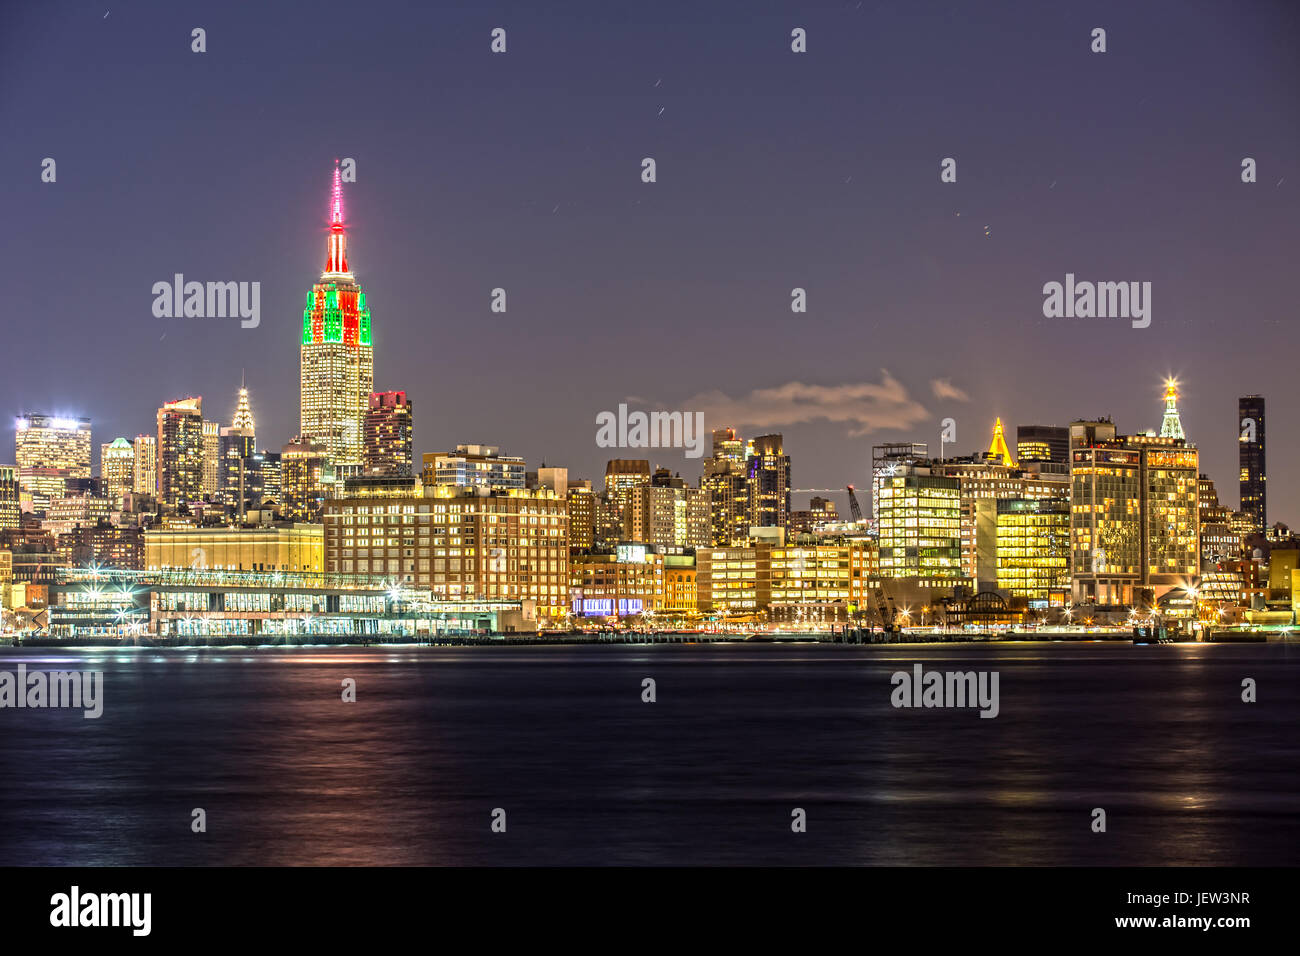 Empire State Building in New York with Skyline at Night - Stock Image